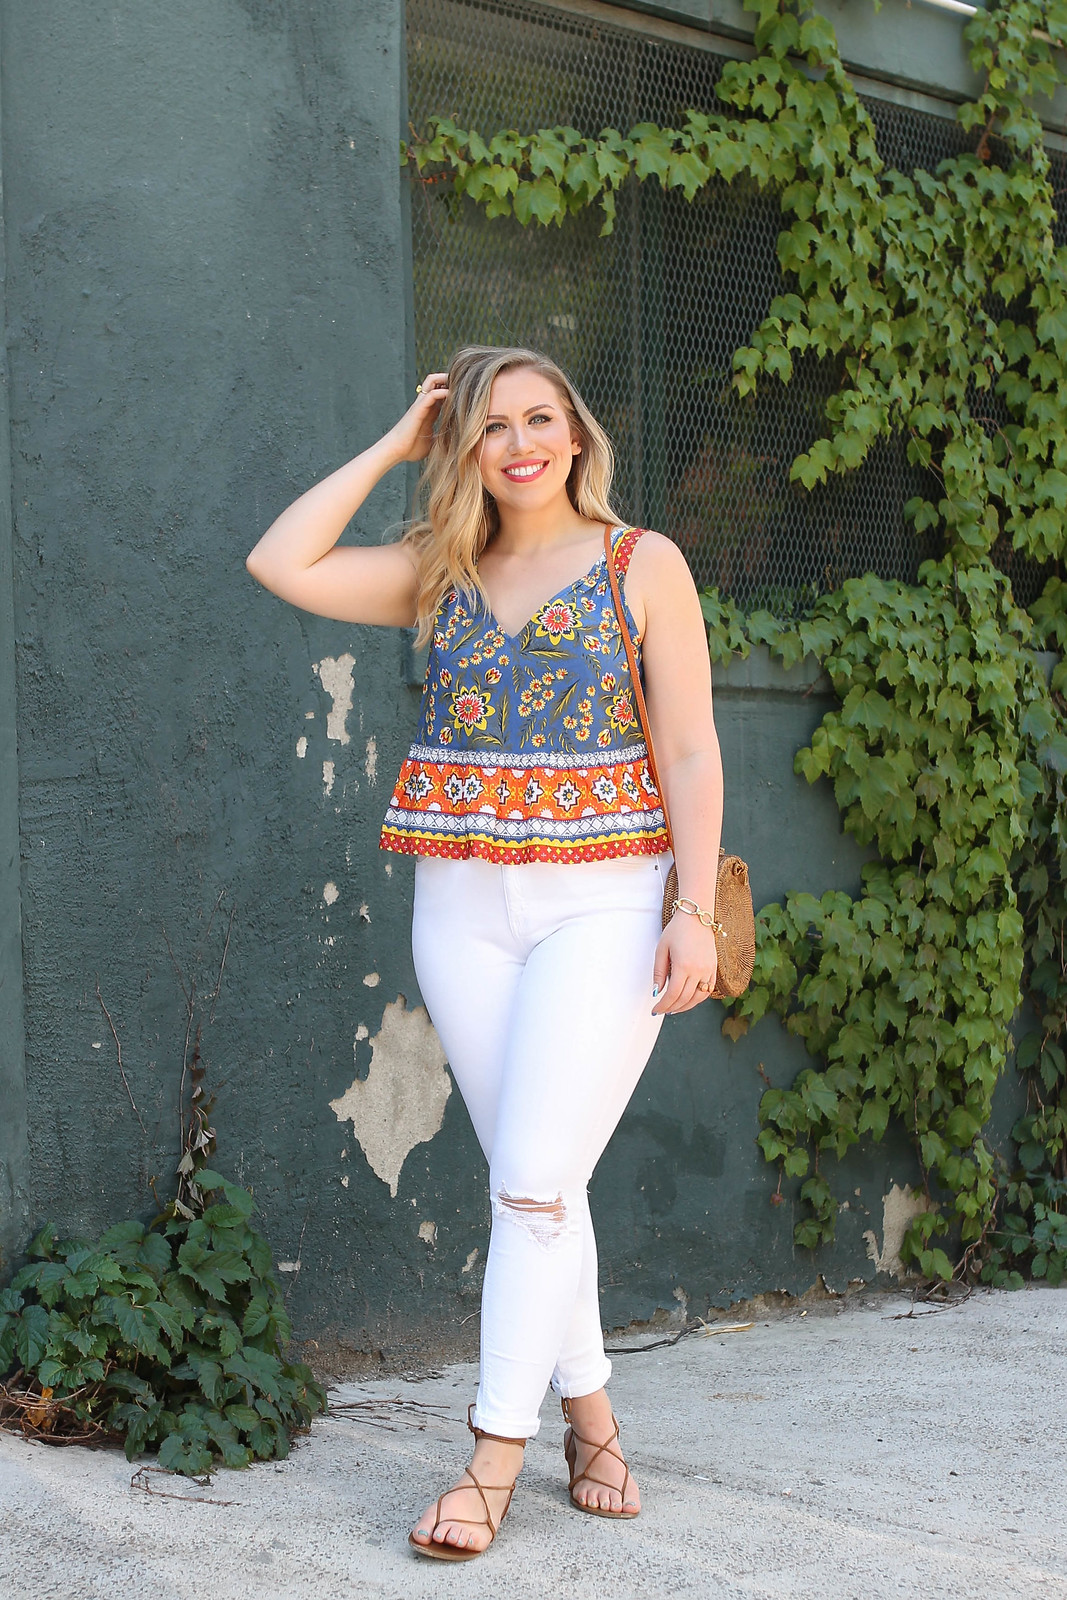 Joie Chinaru Floral Peplum Cotton Top Topshop Jamie White Jeans Summer Outfit Inspiration Jackie Giardina Living After Midnite Style Blogger